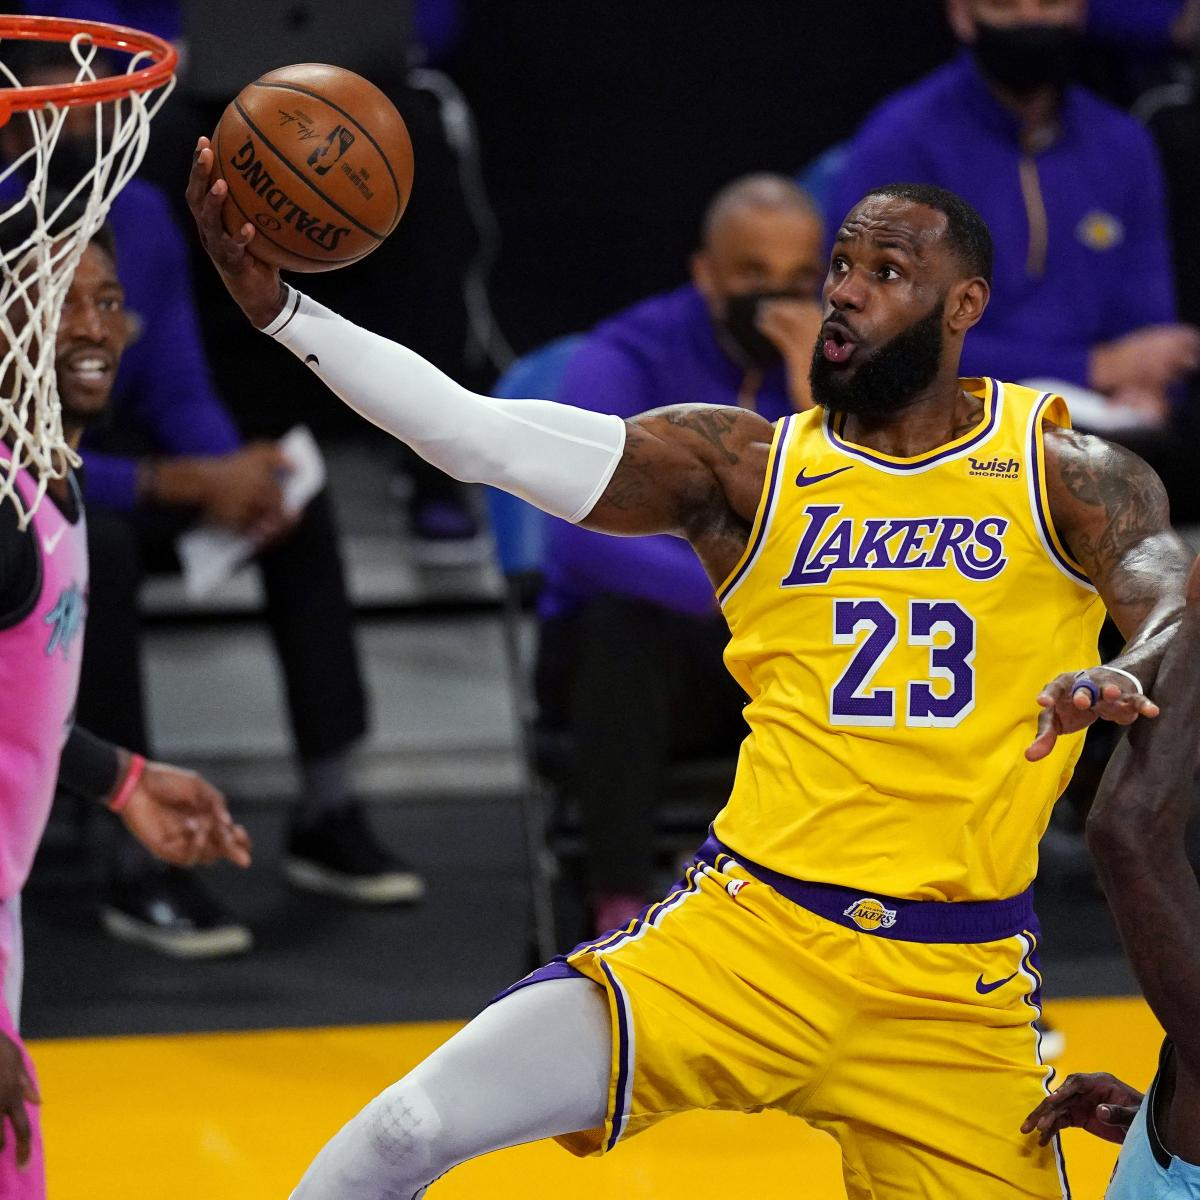 lebron-james-on-lakers-loss-to-heat-photos-simply-did-not-topple-in-the-fourth.jpg